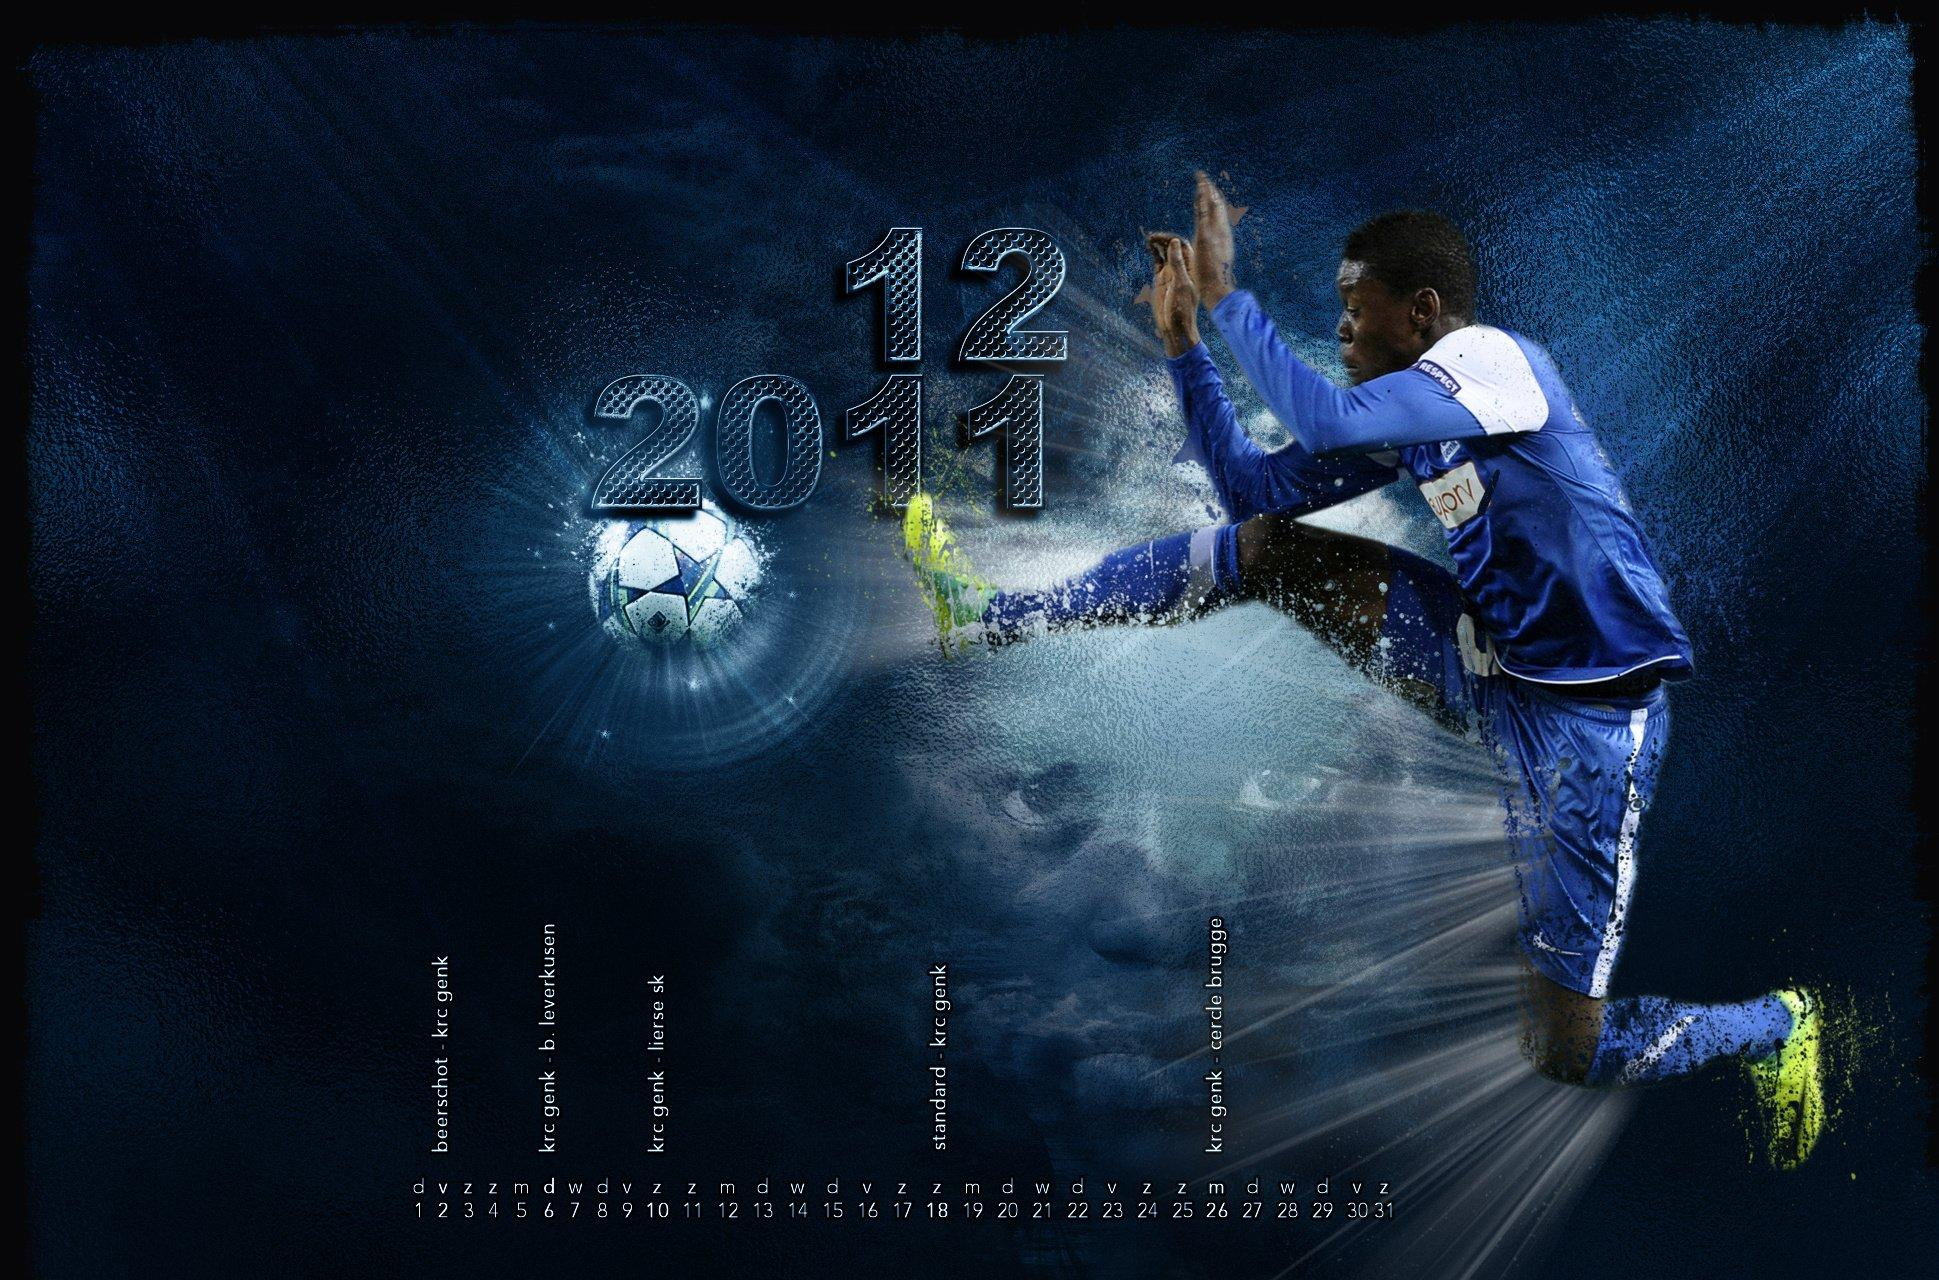 Lies Ceuppens on Twitter: Just uploaded another KRC Genk #wallpaper ...